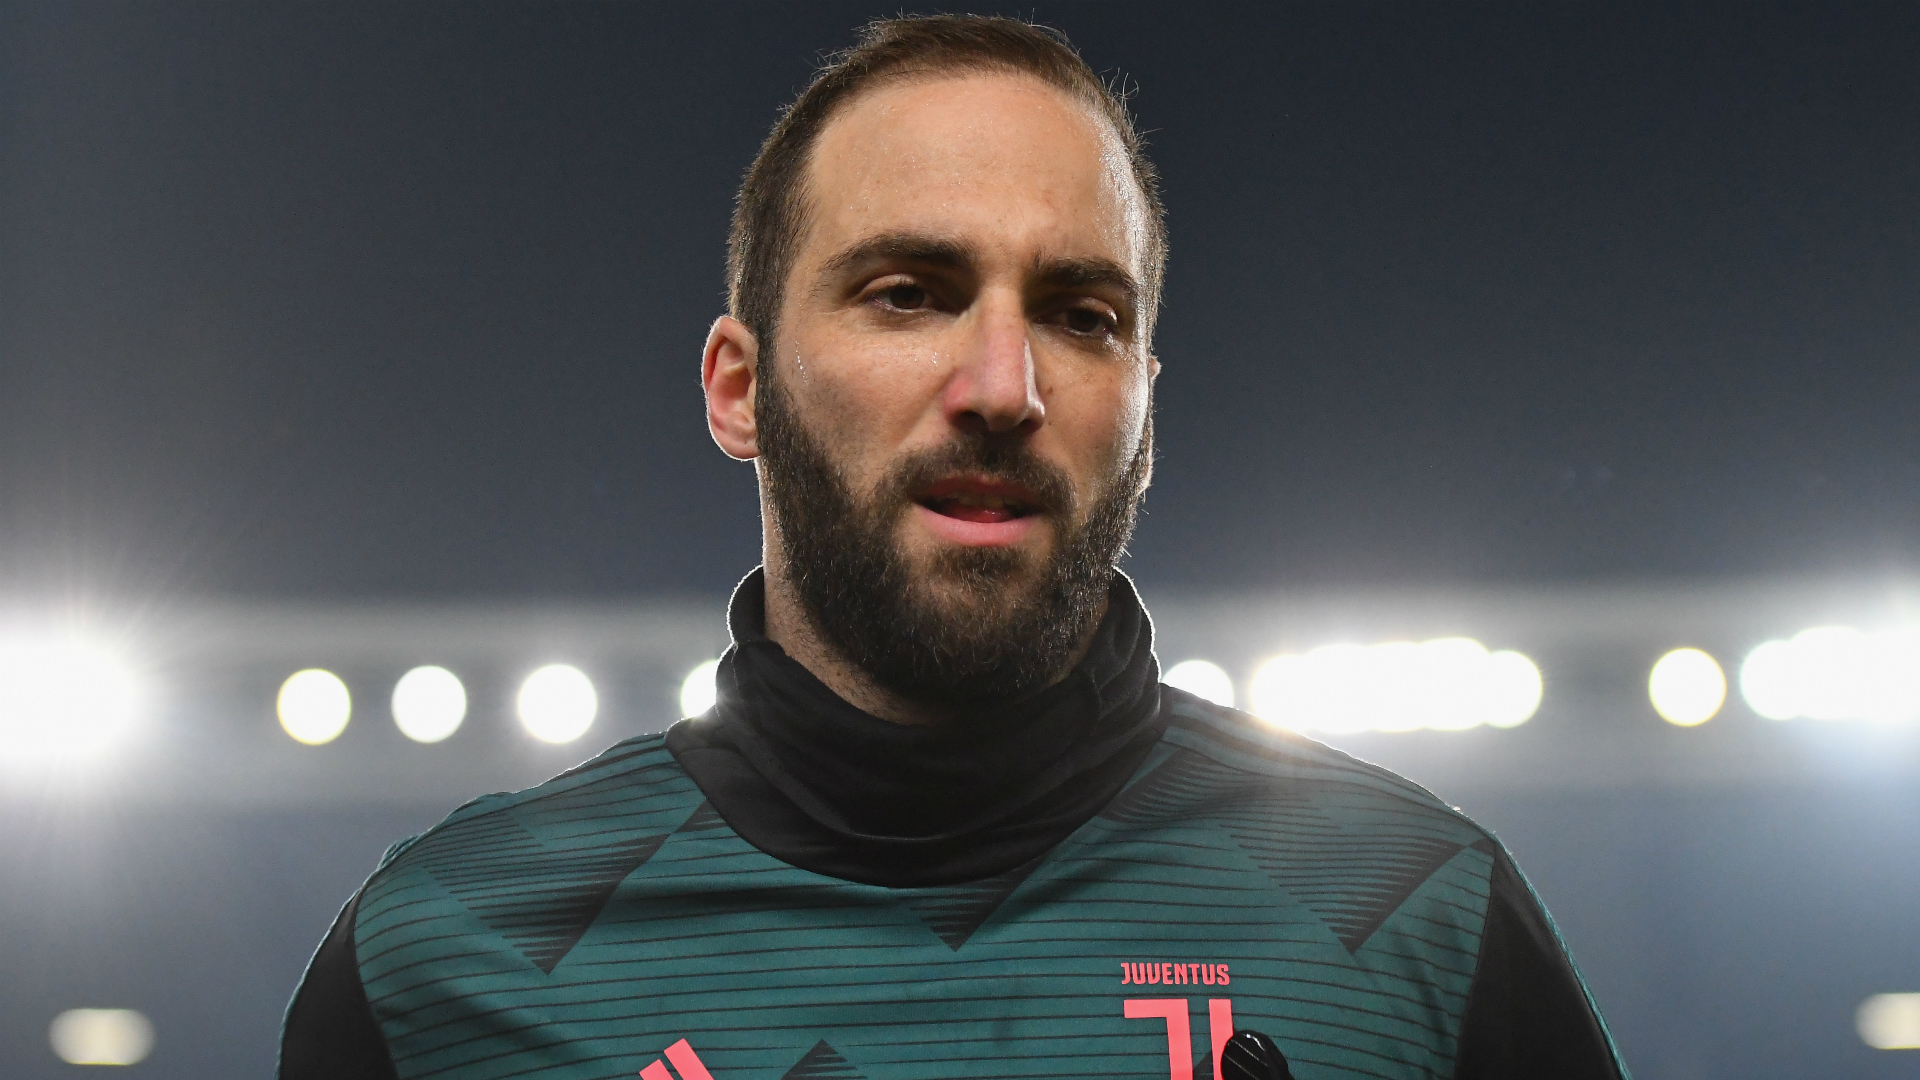 Gonzalo Higuain discussed the possibility of returning to River Plate.